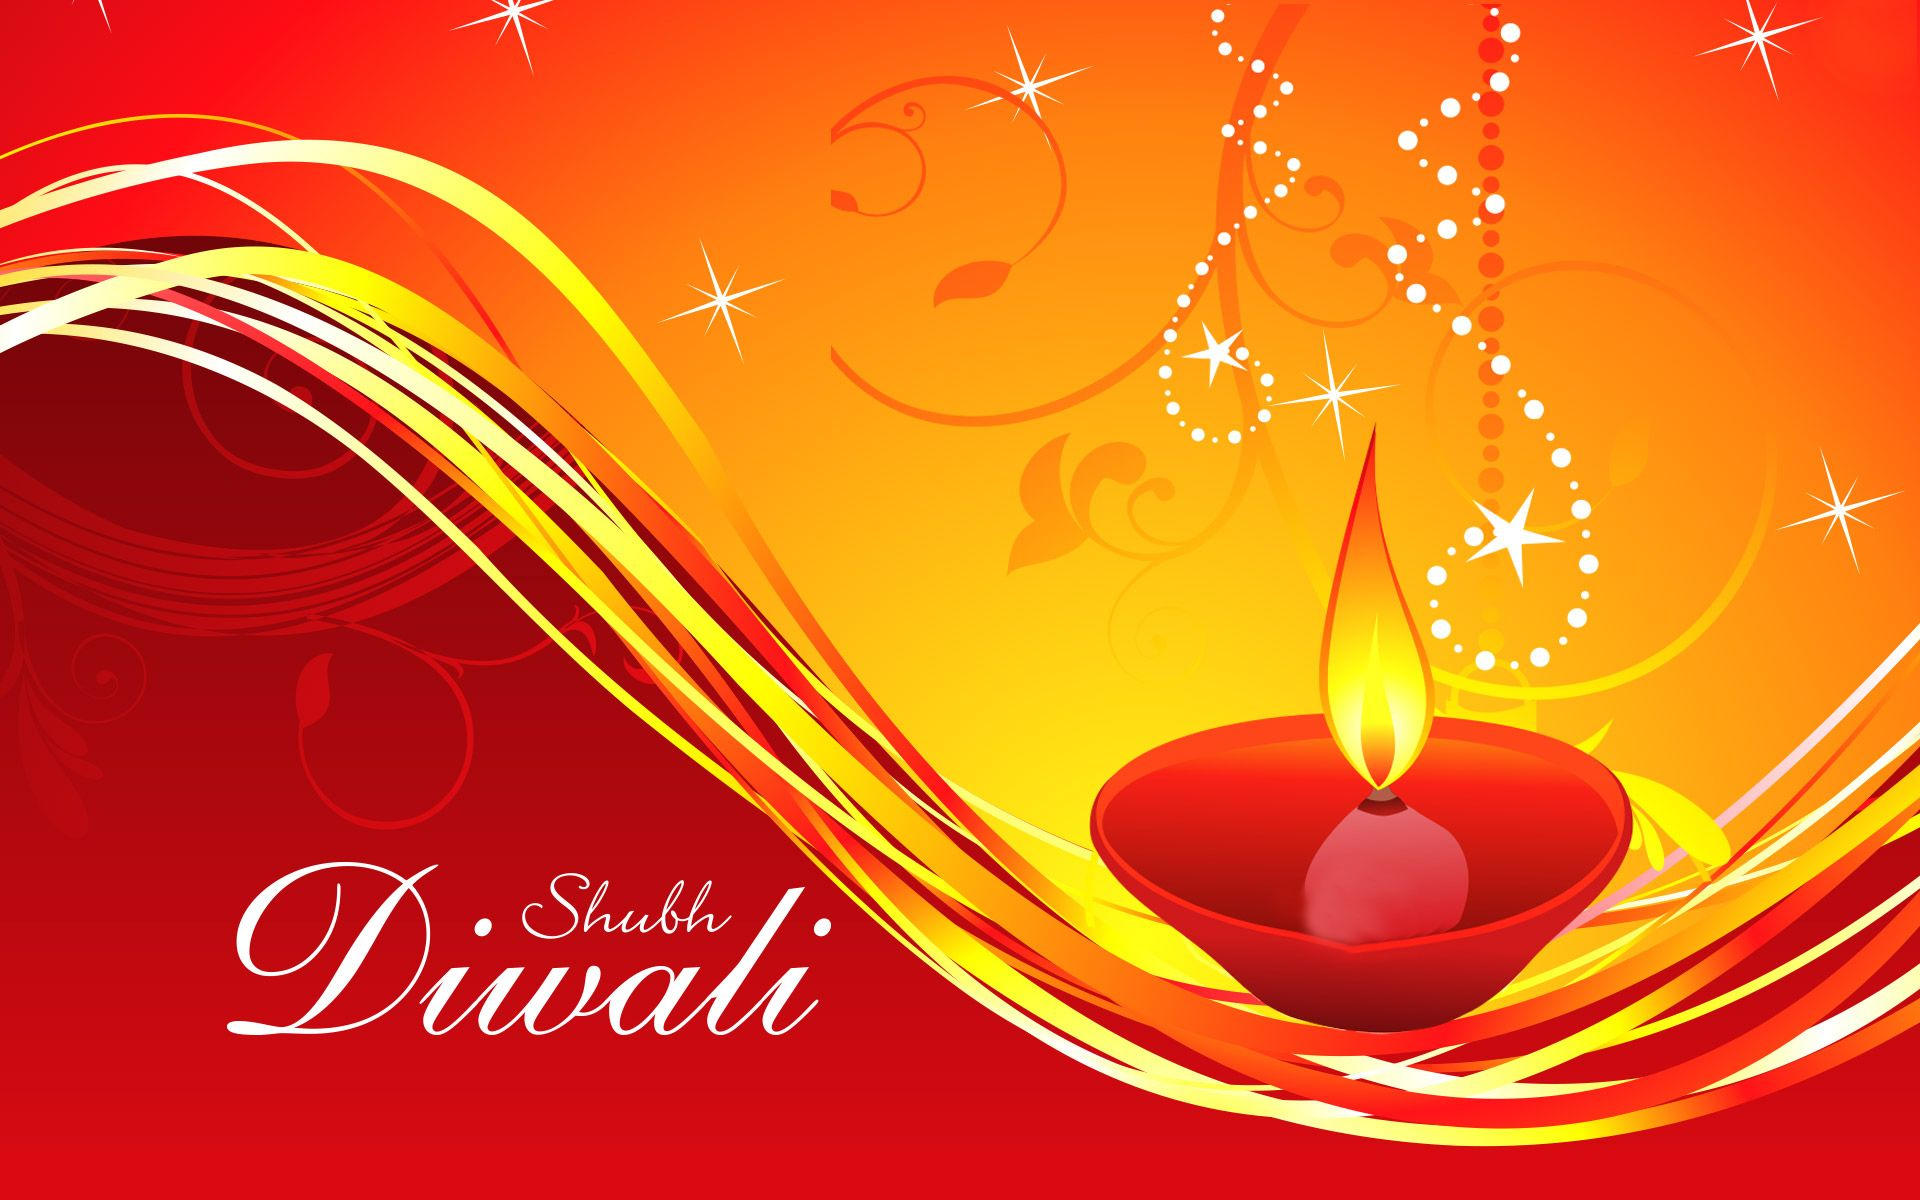 Happy diwali best wishes hd images happy diwali hd wallpapers happy diwali best wishes hd images kristyandbryce Gallery